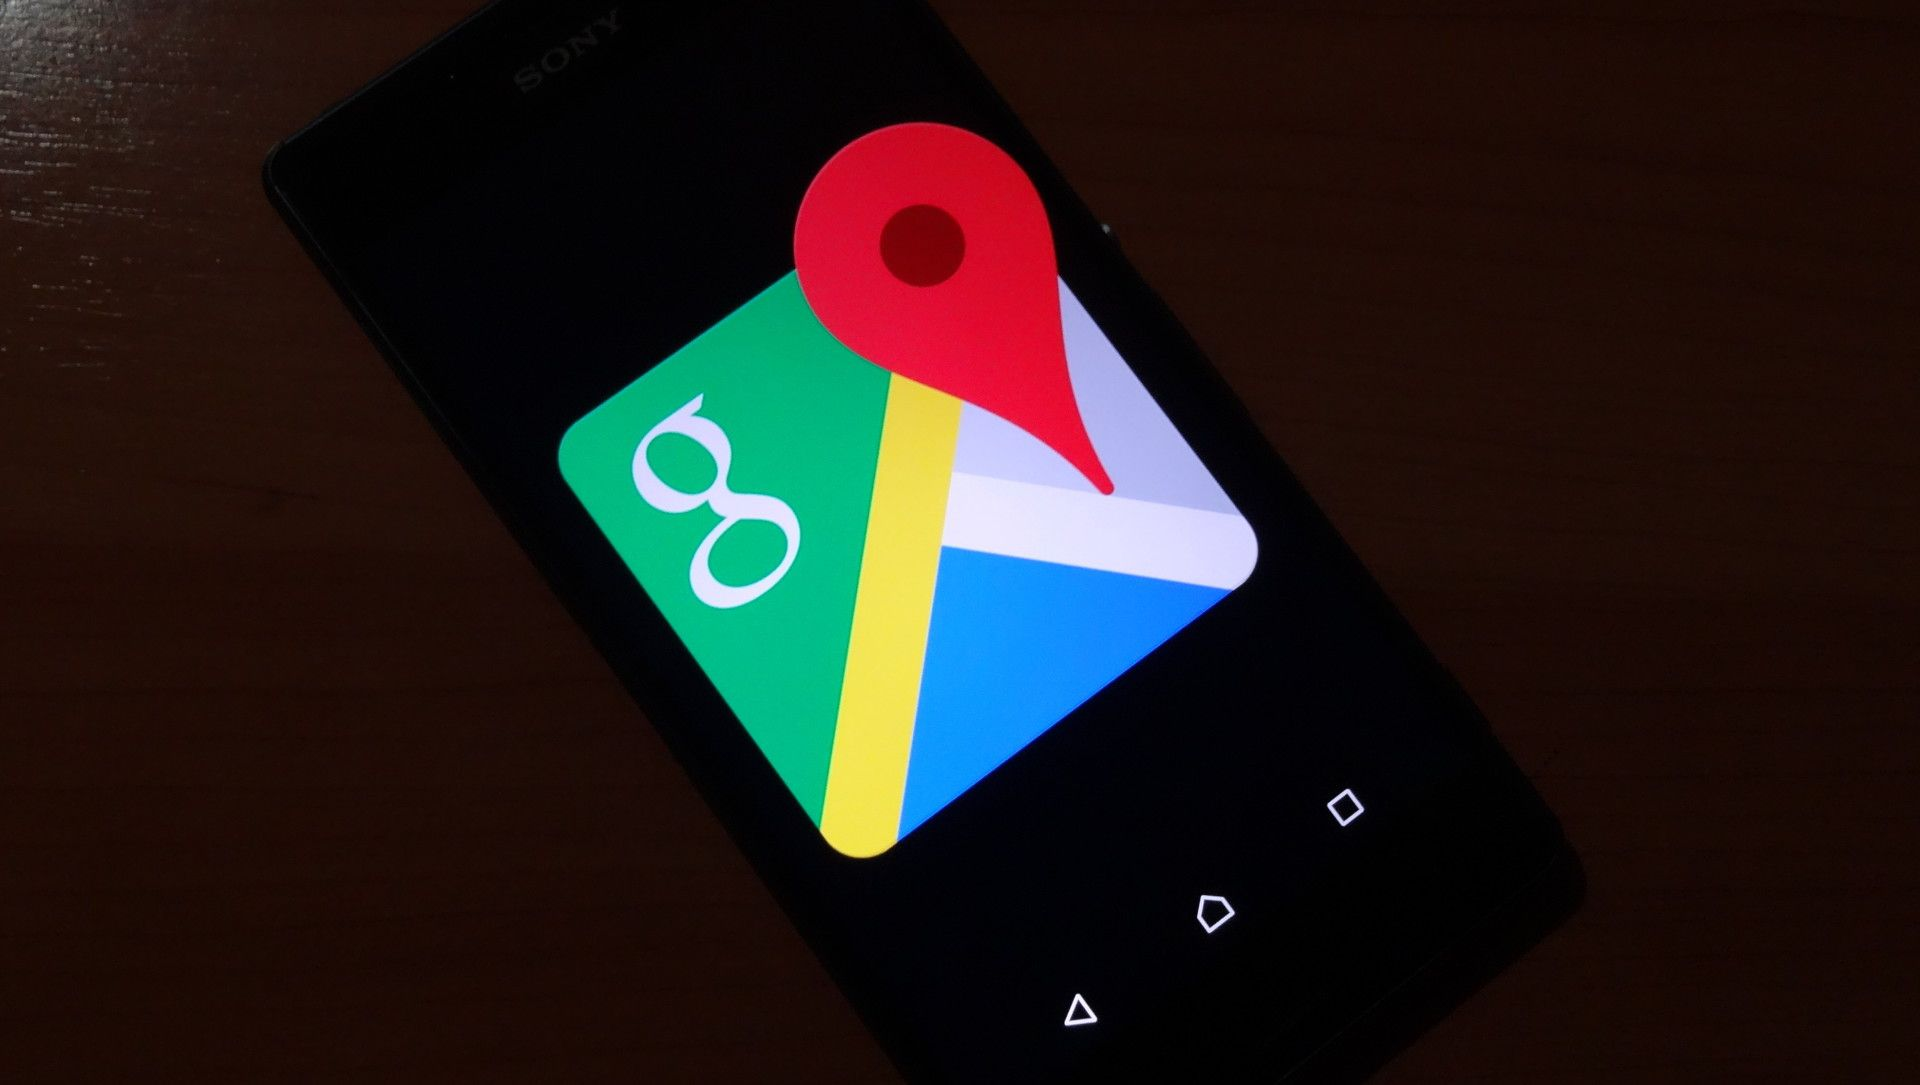 Google Discontinuing Panoramio, To Be Replaced By Maps